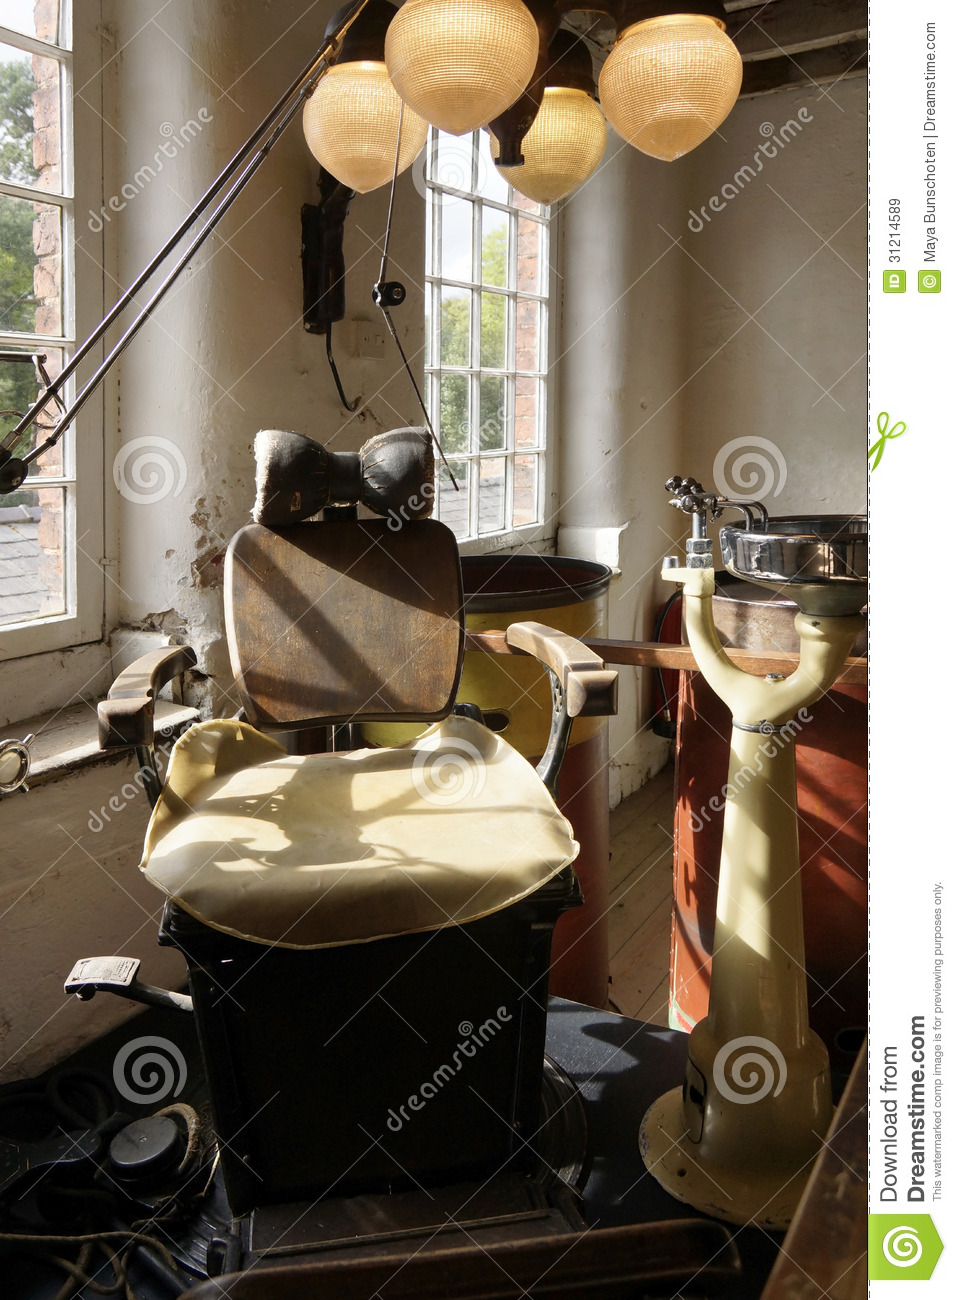 Old Dentist Chair In Quarry Mill England Royalty Free  : old dentist chair quarry mill england 31214589 Chair <strong>Clip Art</strong> from www.dreamstime.com size 957 x 1300 jpeg 396kB